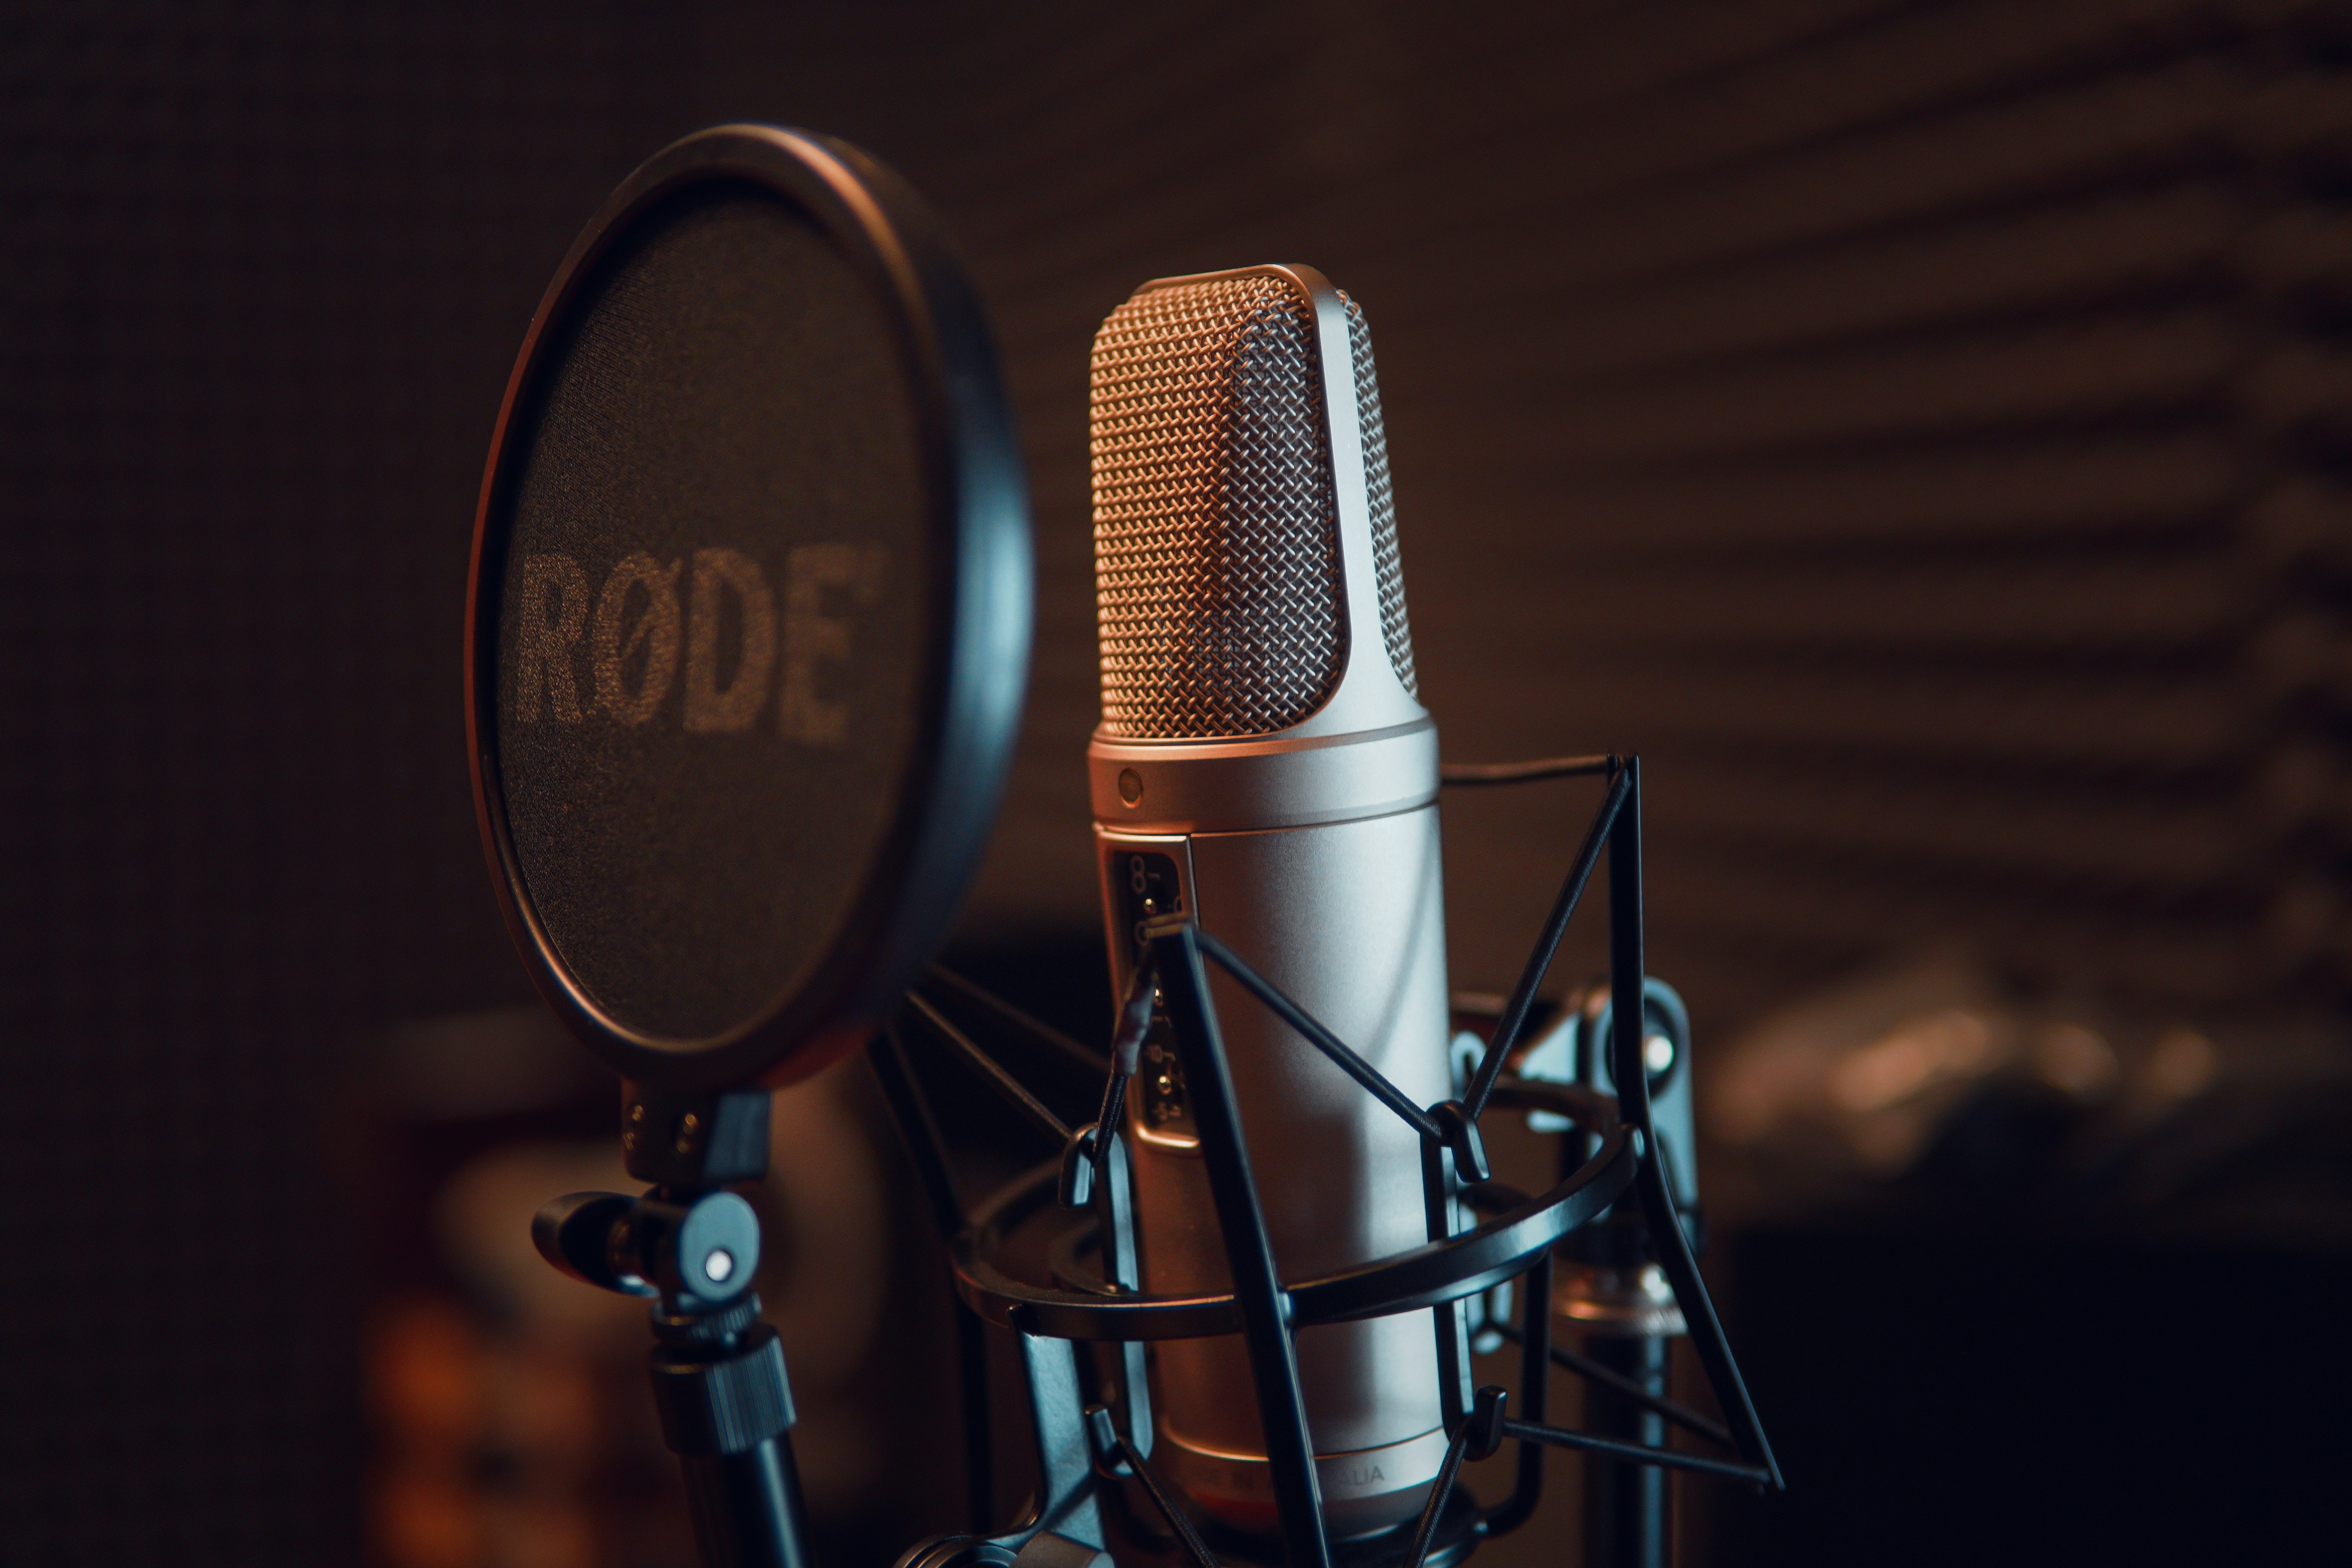 I will record a voice over for you with a nice voice